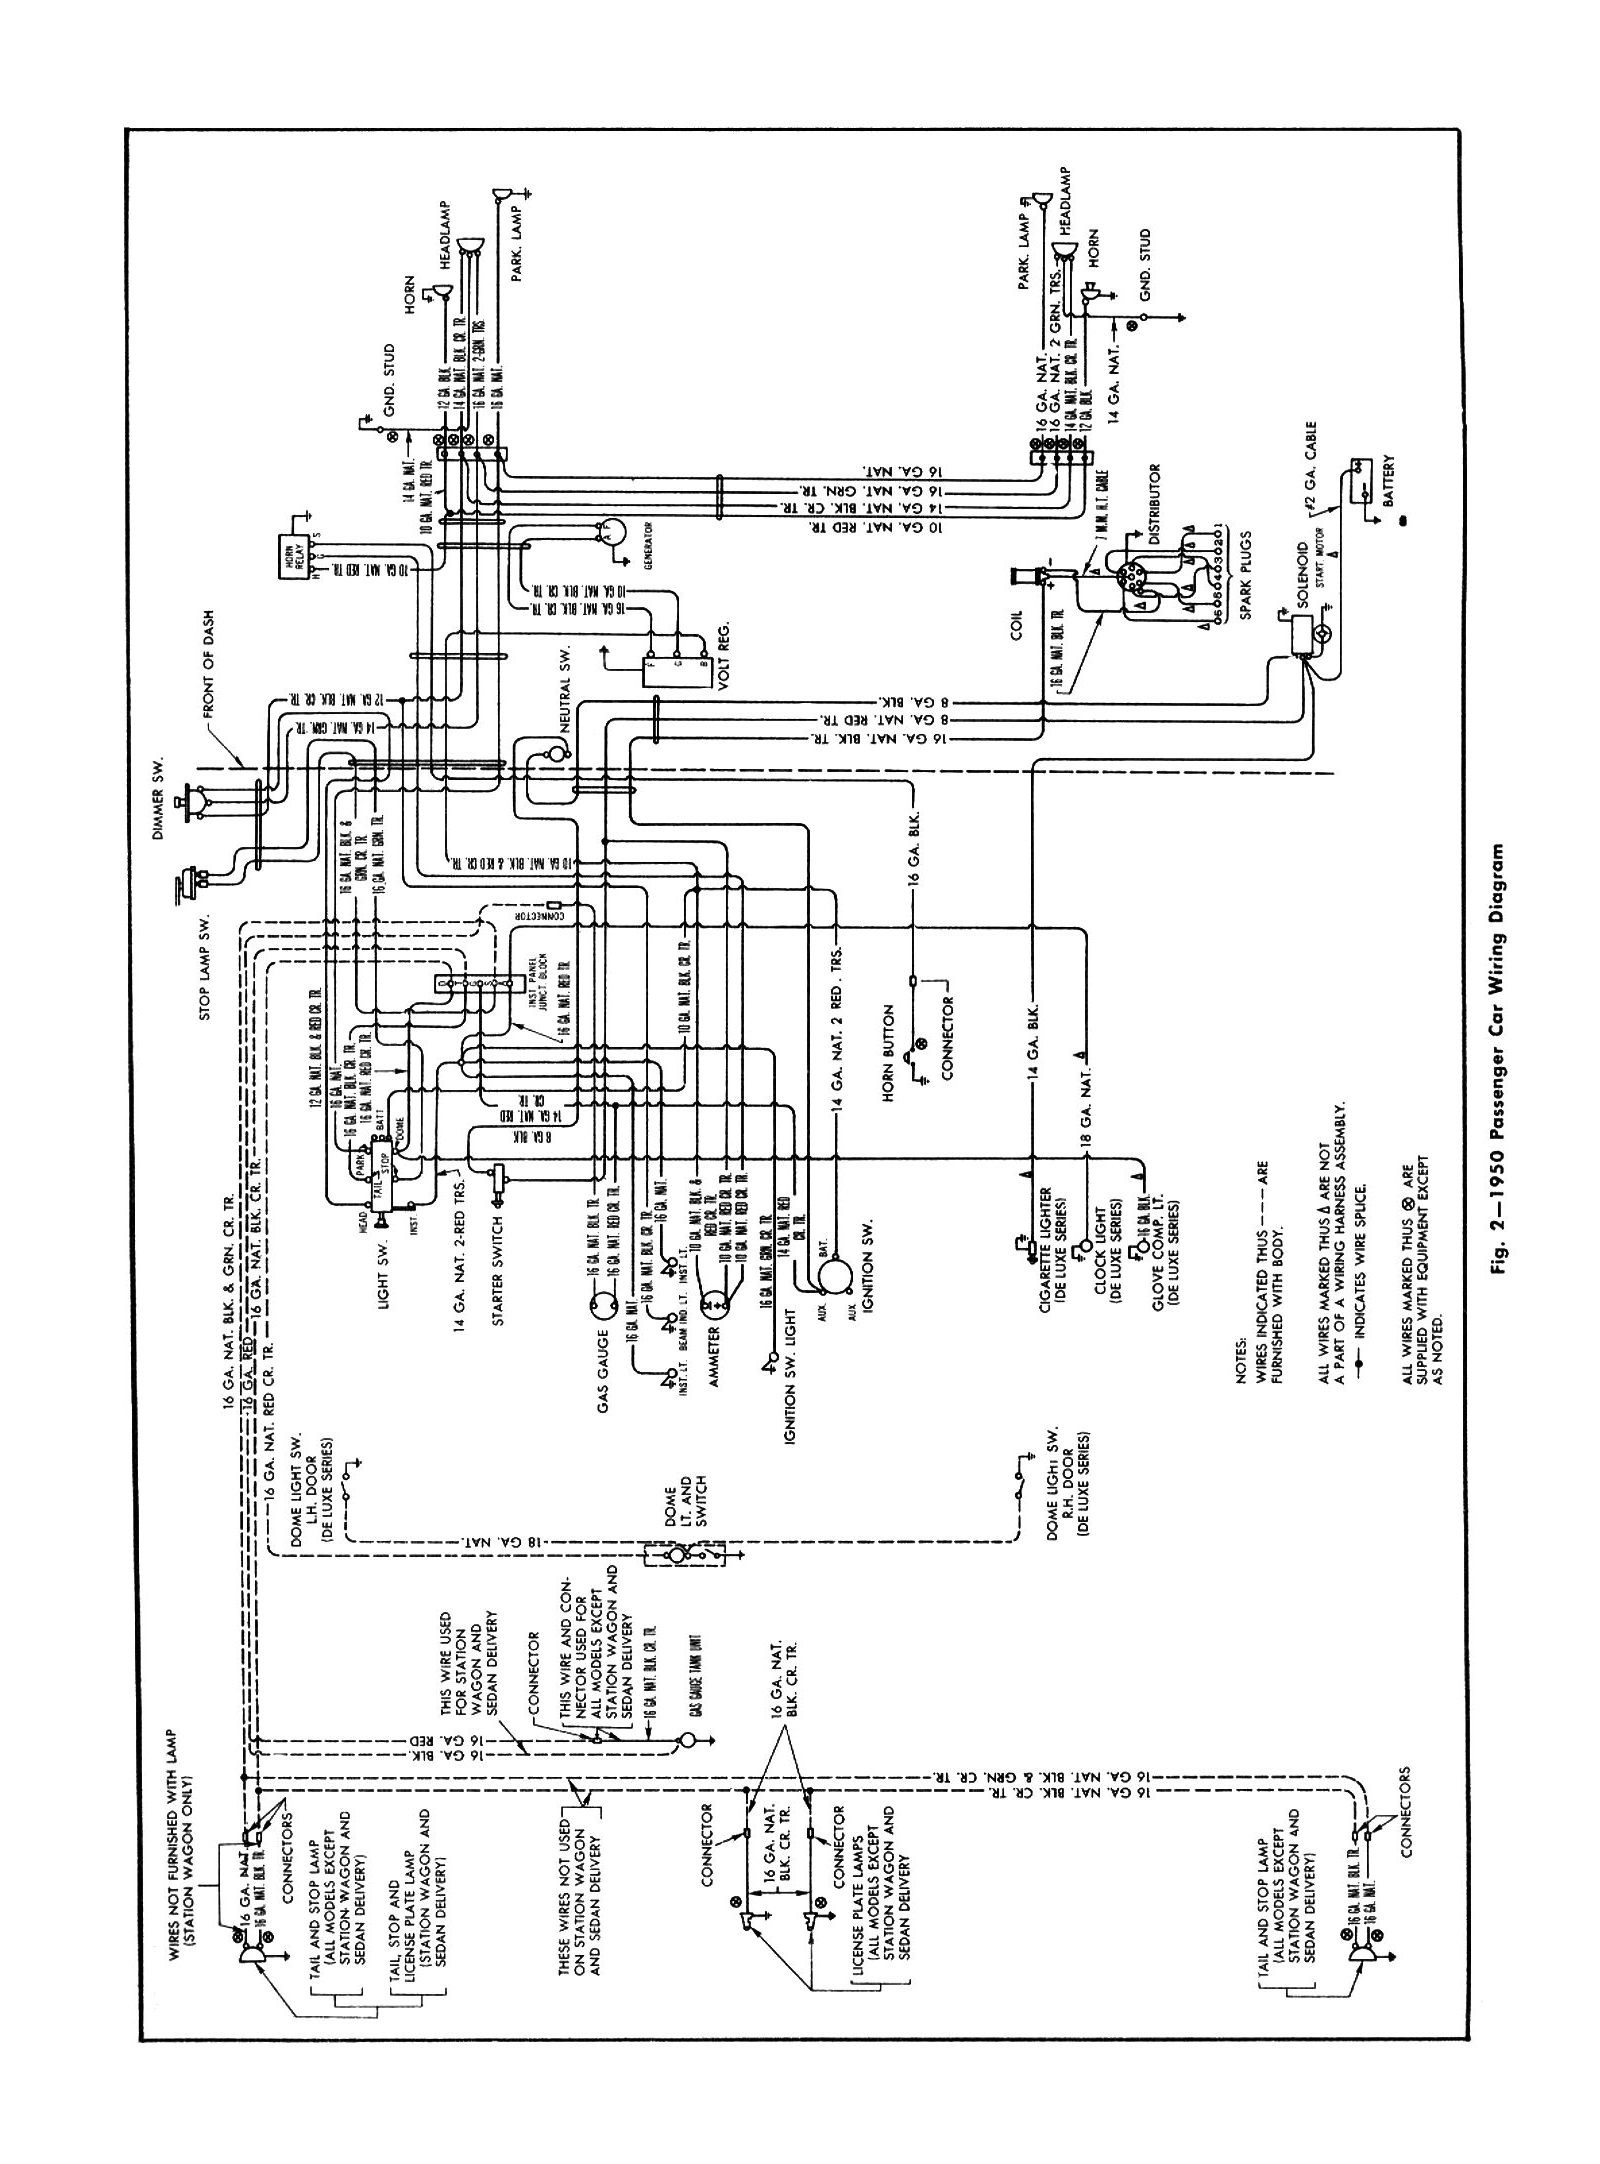 hight resolution of chevy wiring diagrams schematic diagram 1950 hudson wiring diagram